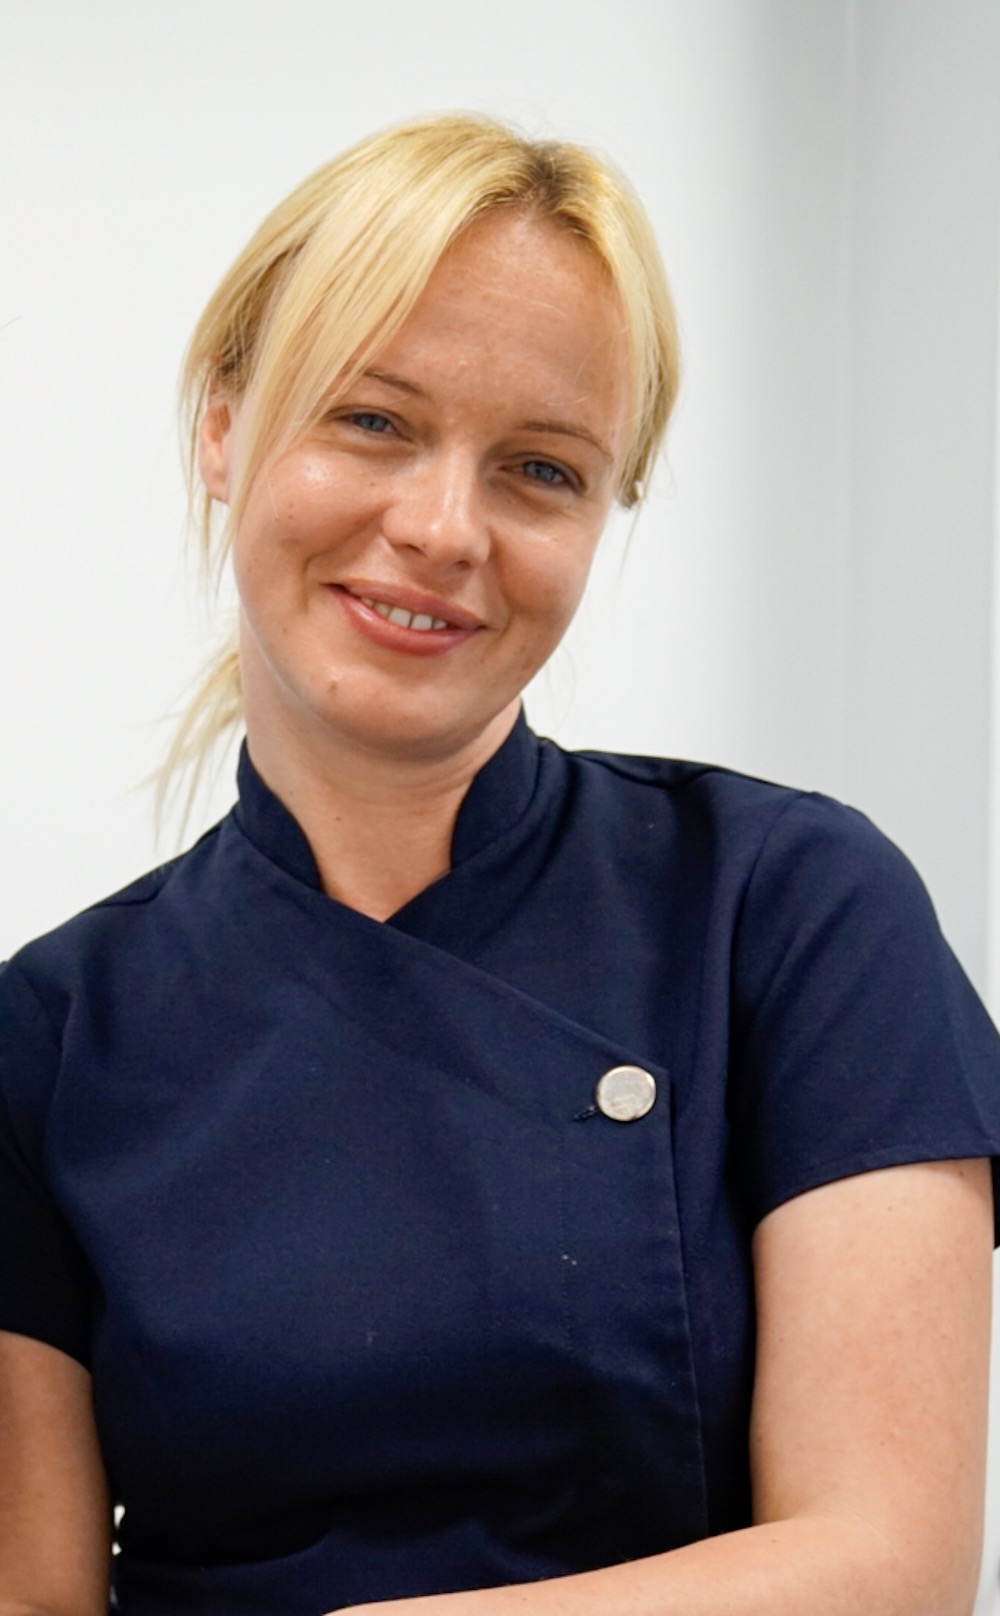 Anna - Qualified Dental Nurse